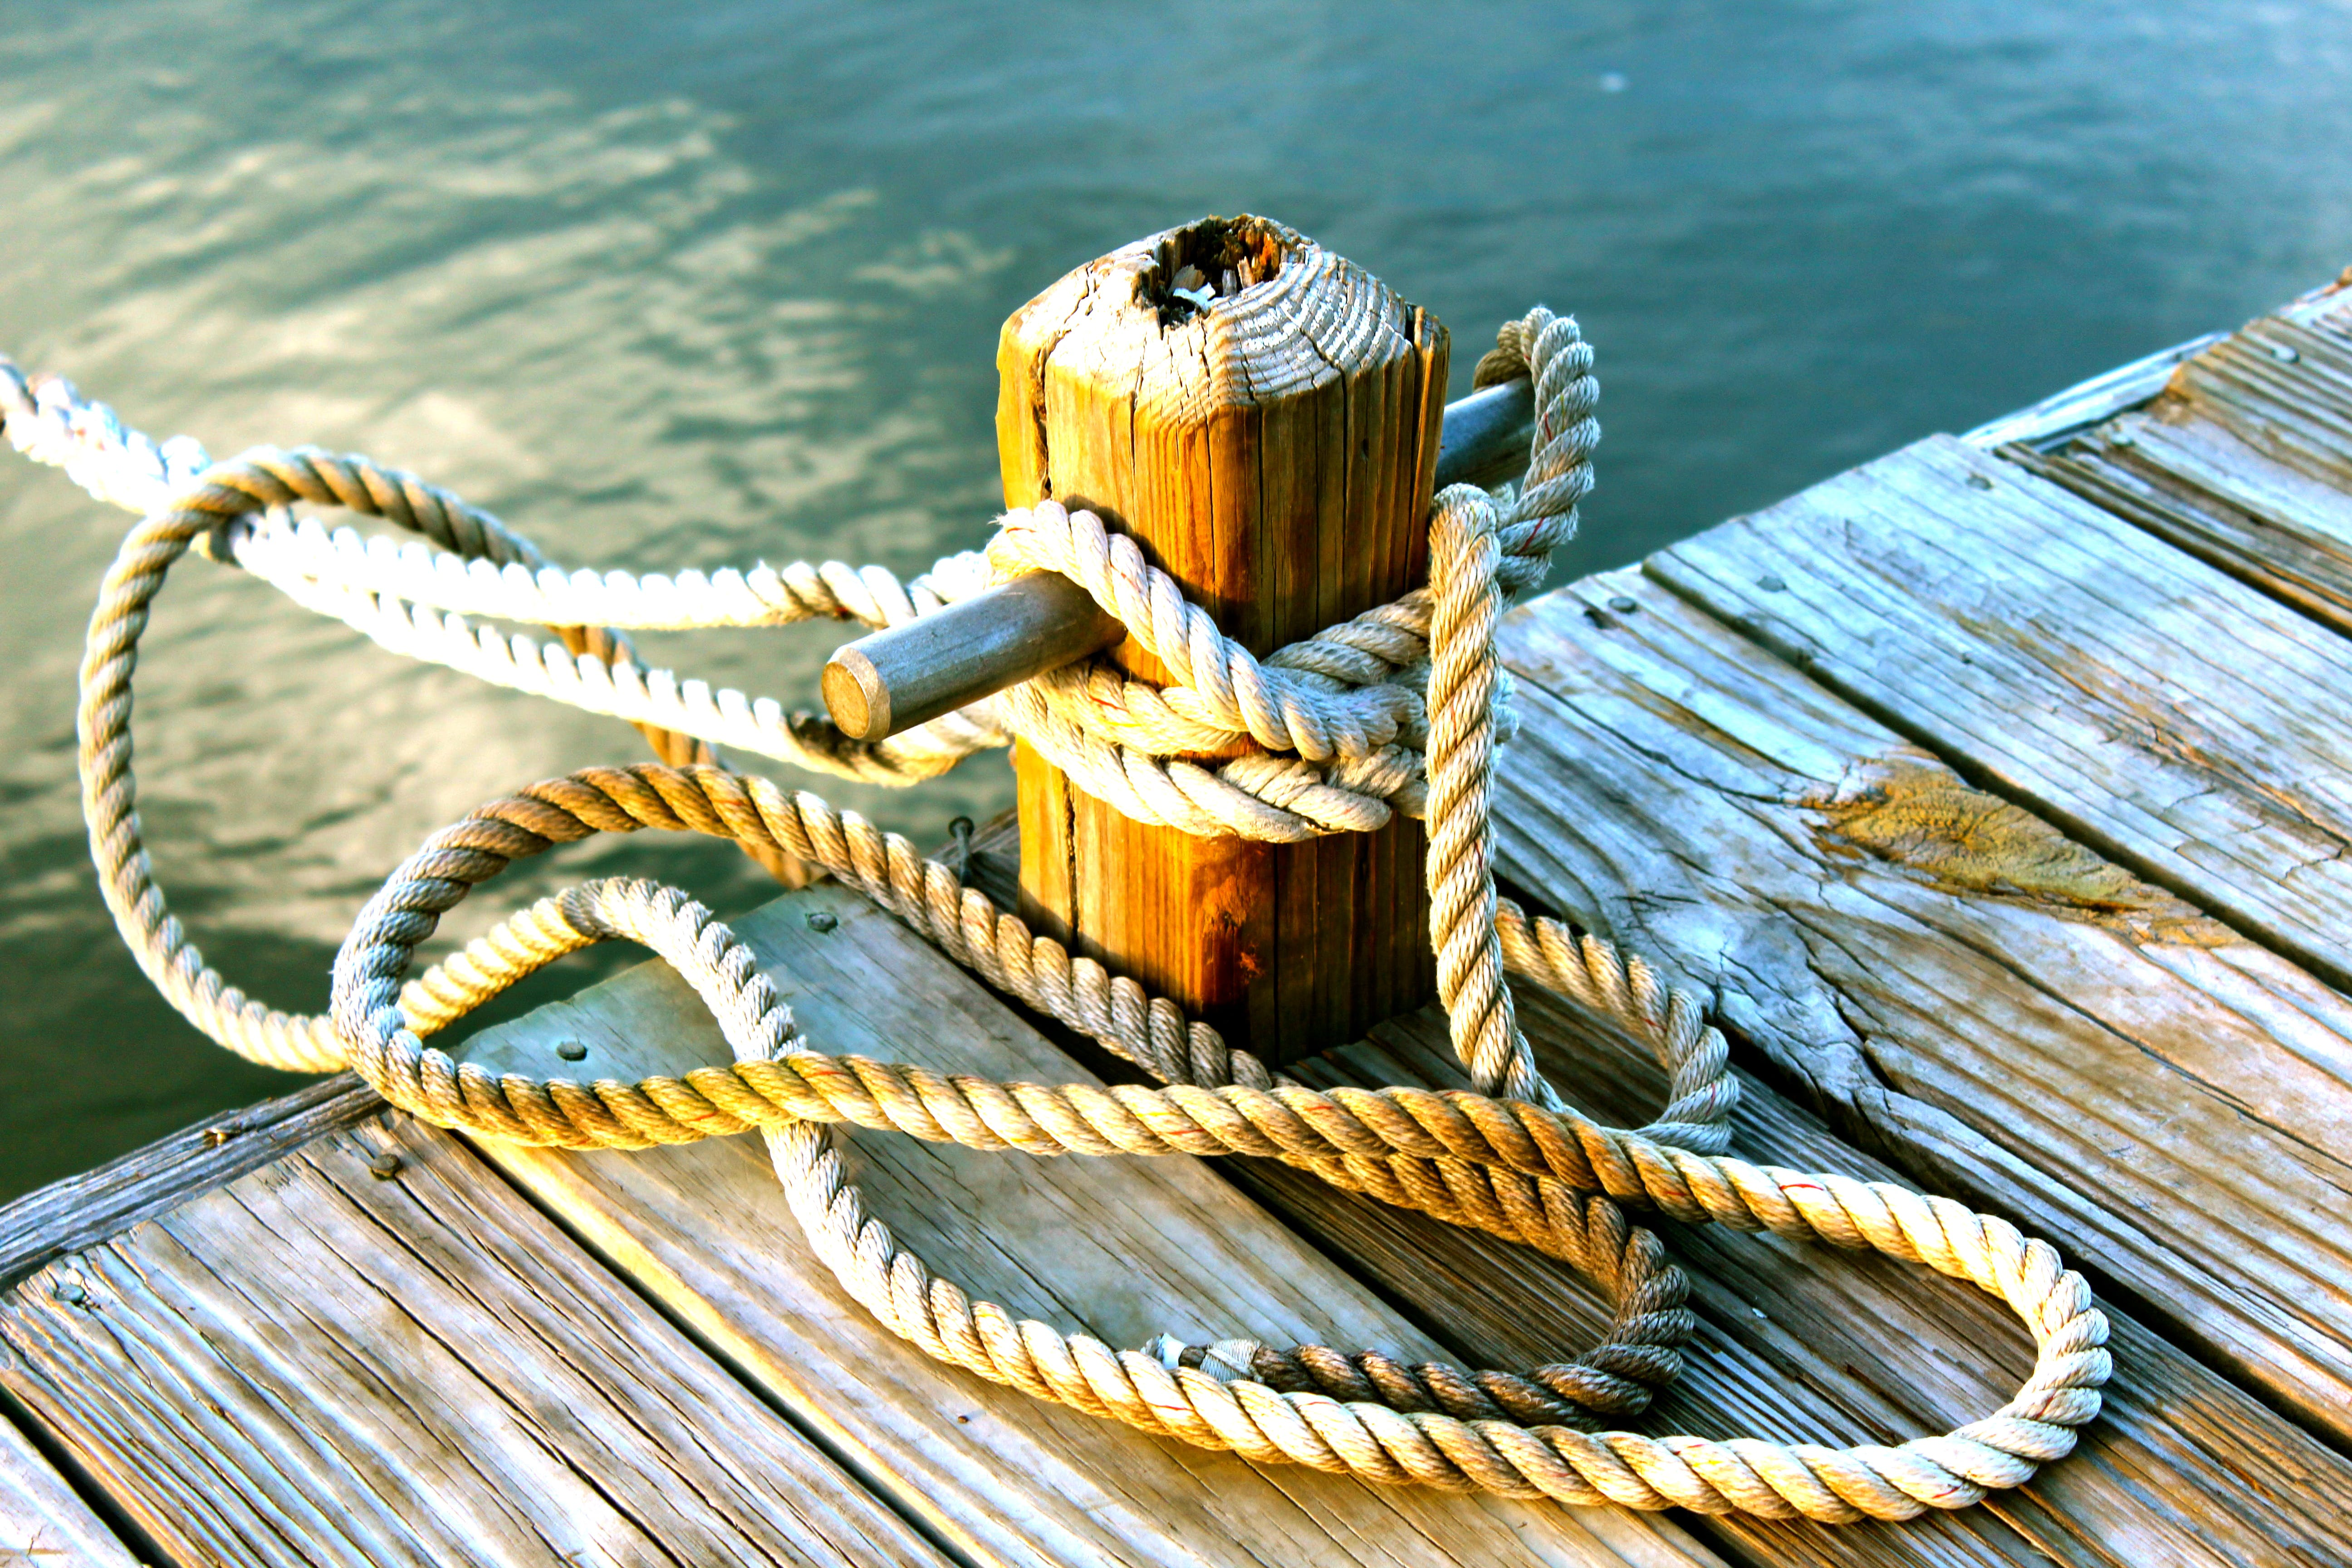 Brown Wooden Dock With Post Tied With Brown Rope